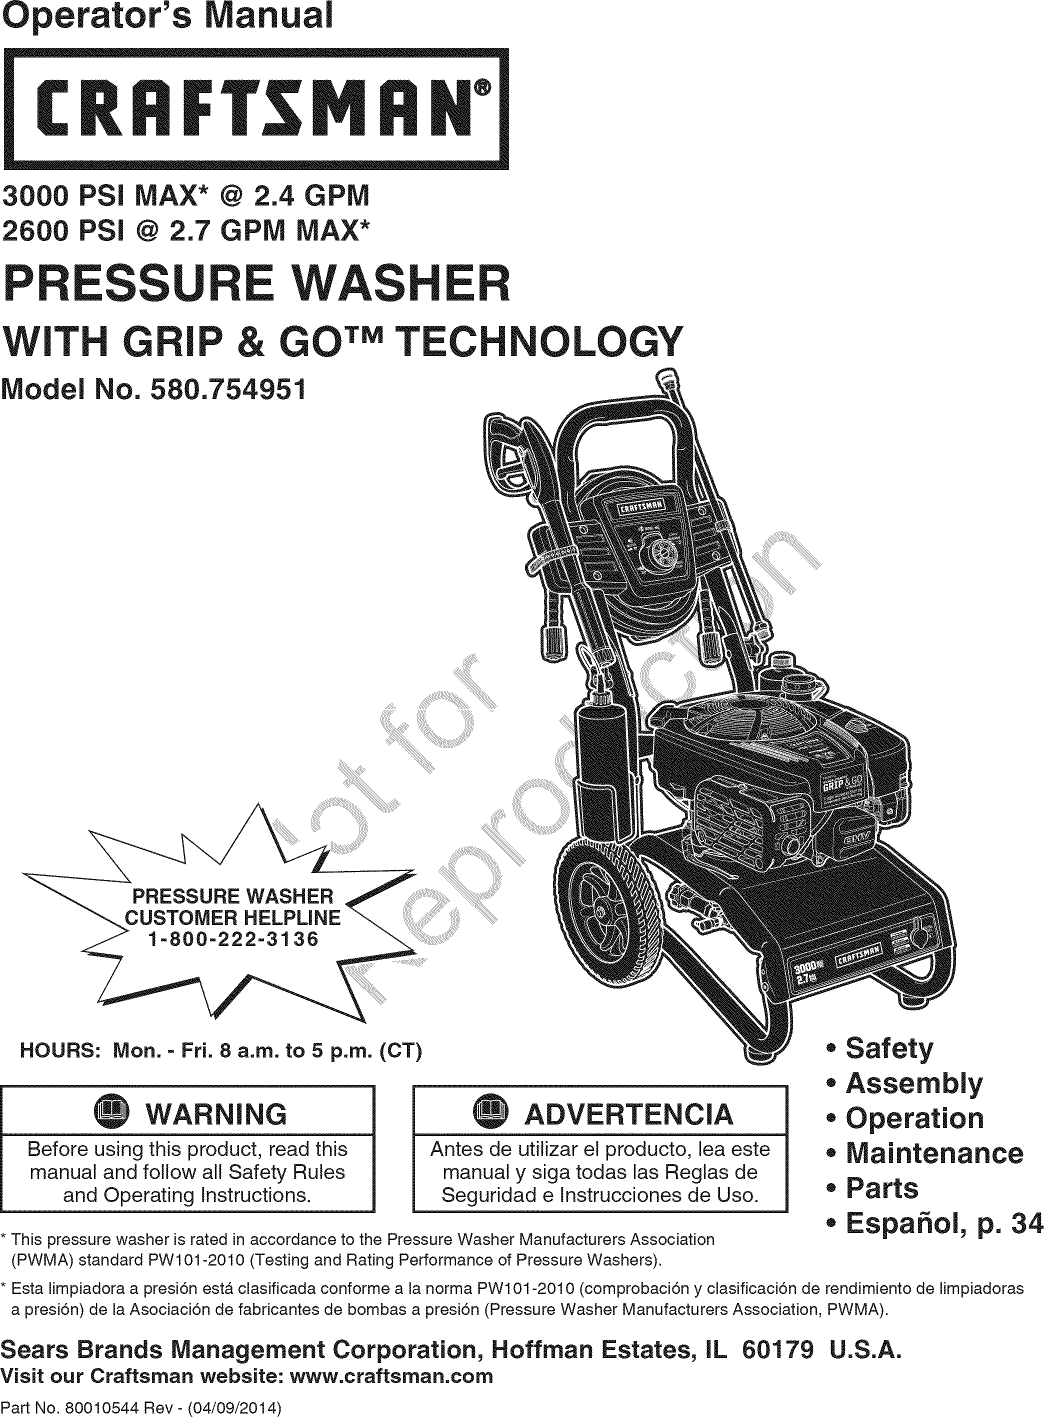 Craftsman 580754951 User Manual POWER WASHER Manuals And